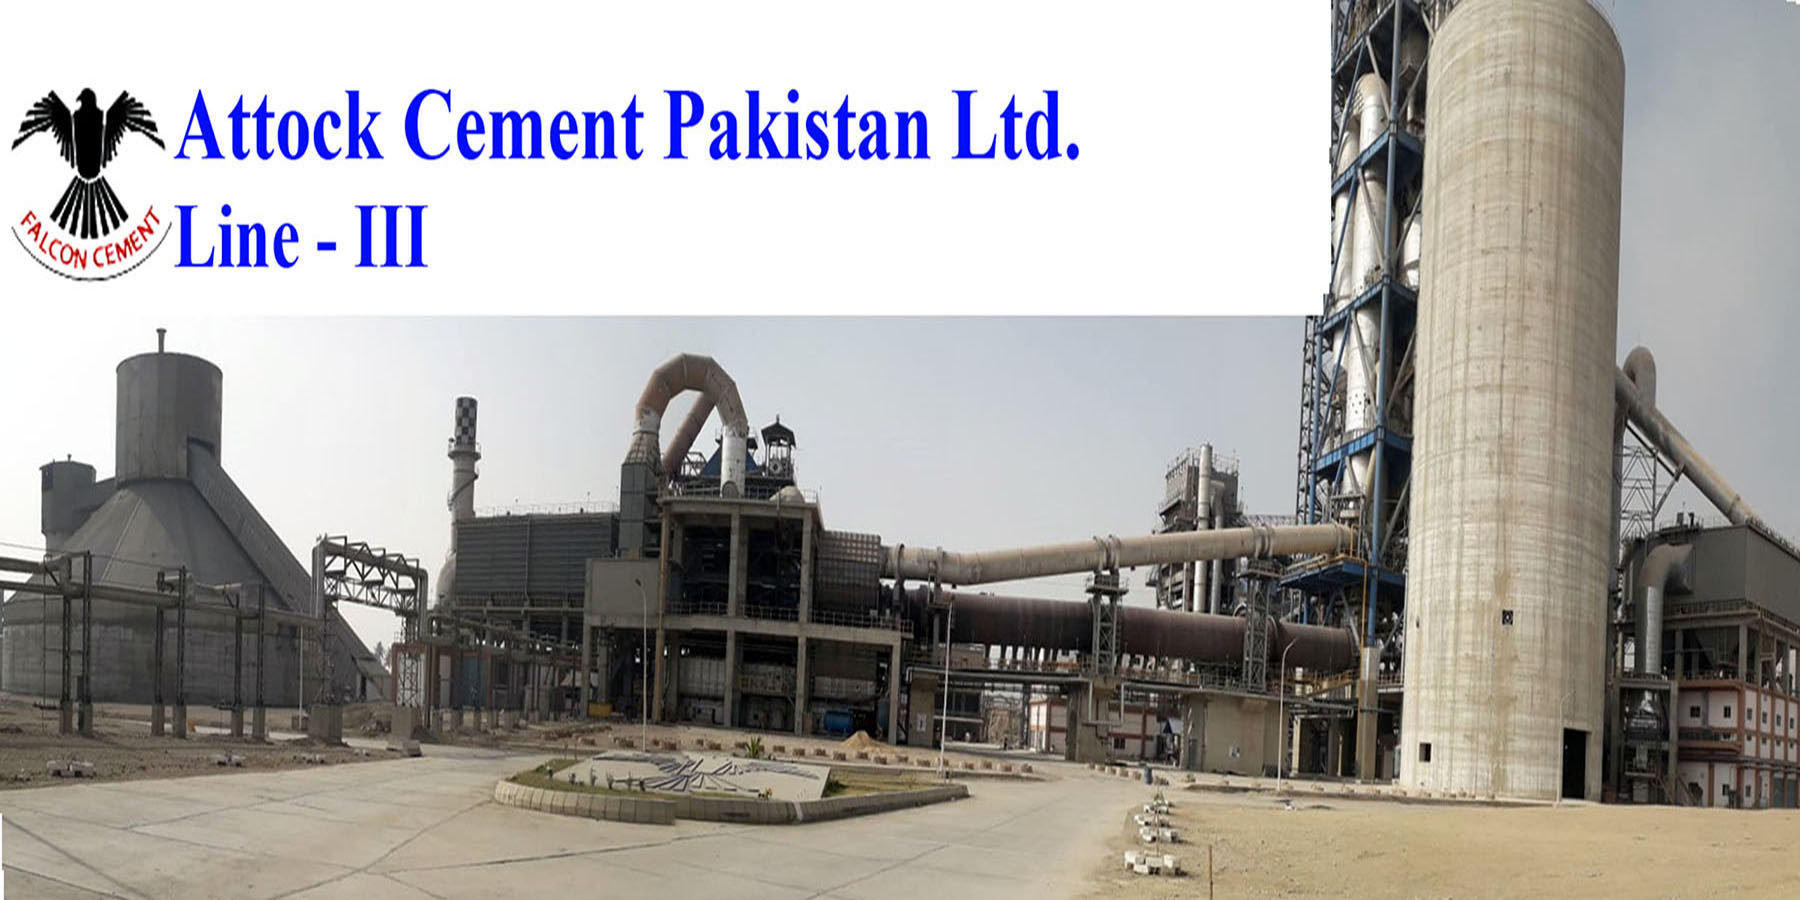 Attock Cement Pakistan